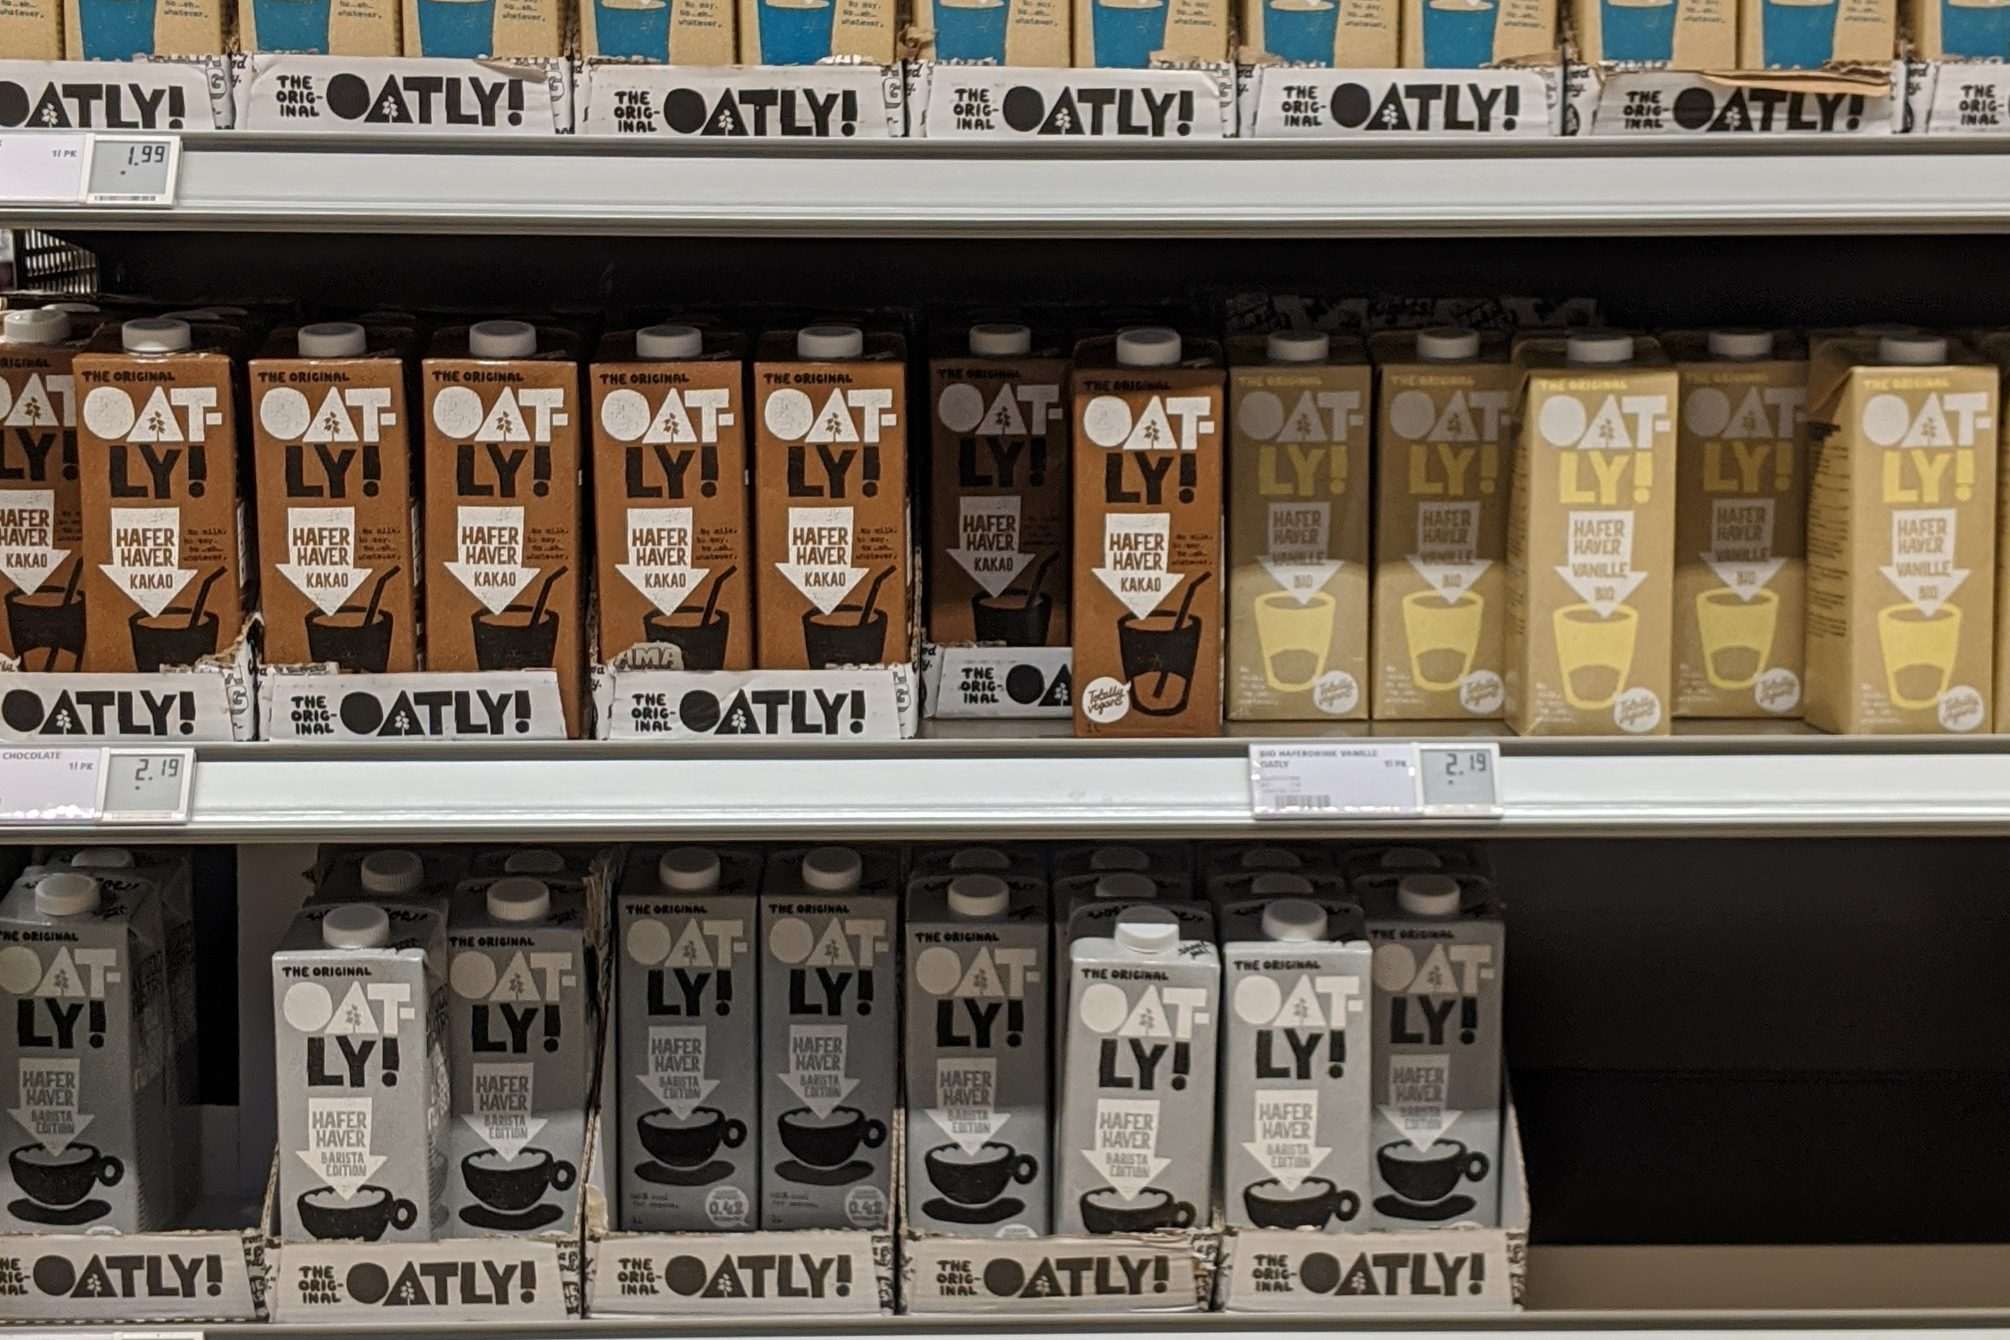 Alternativen zur Oatly Hafermilch